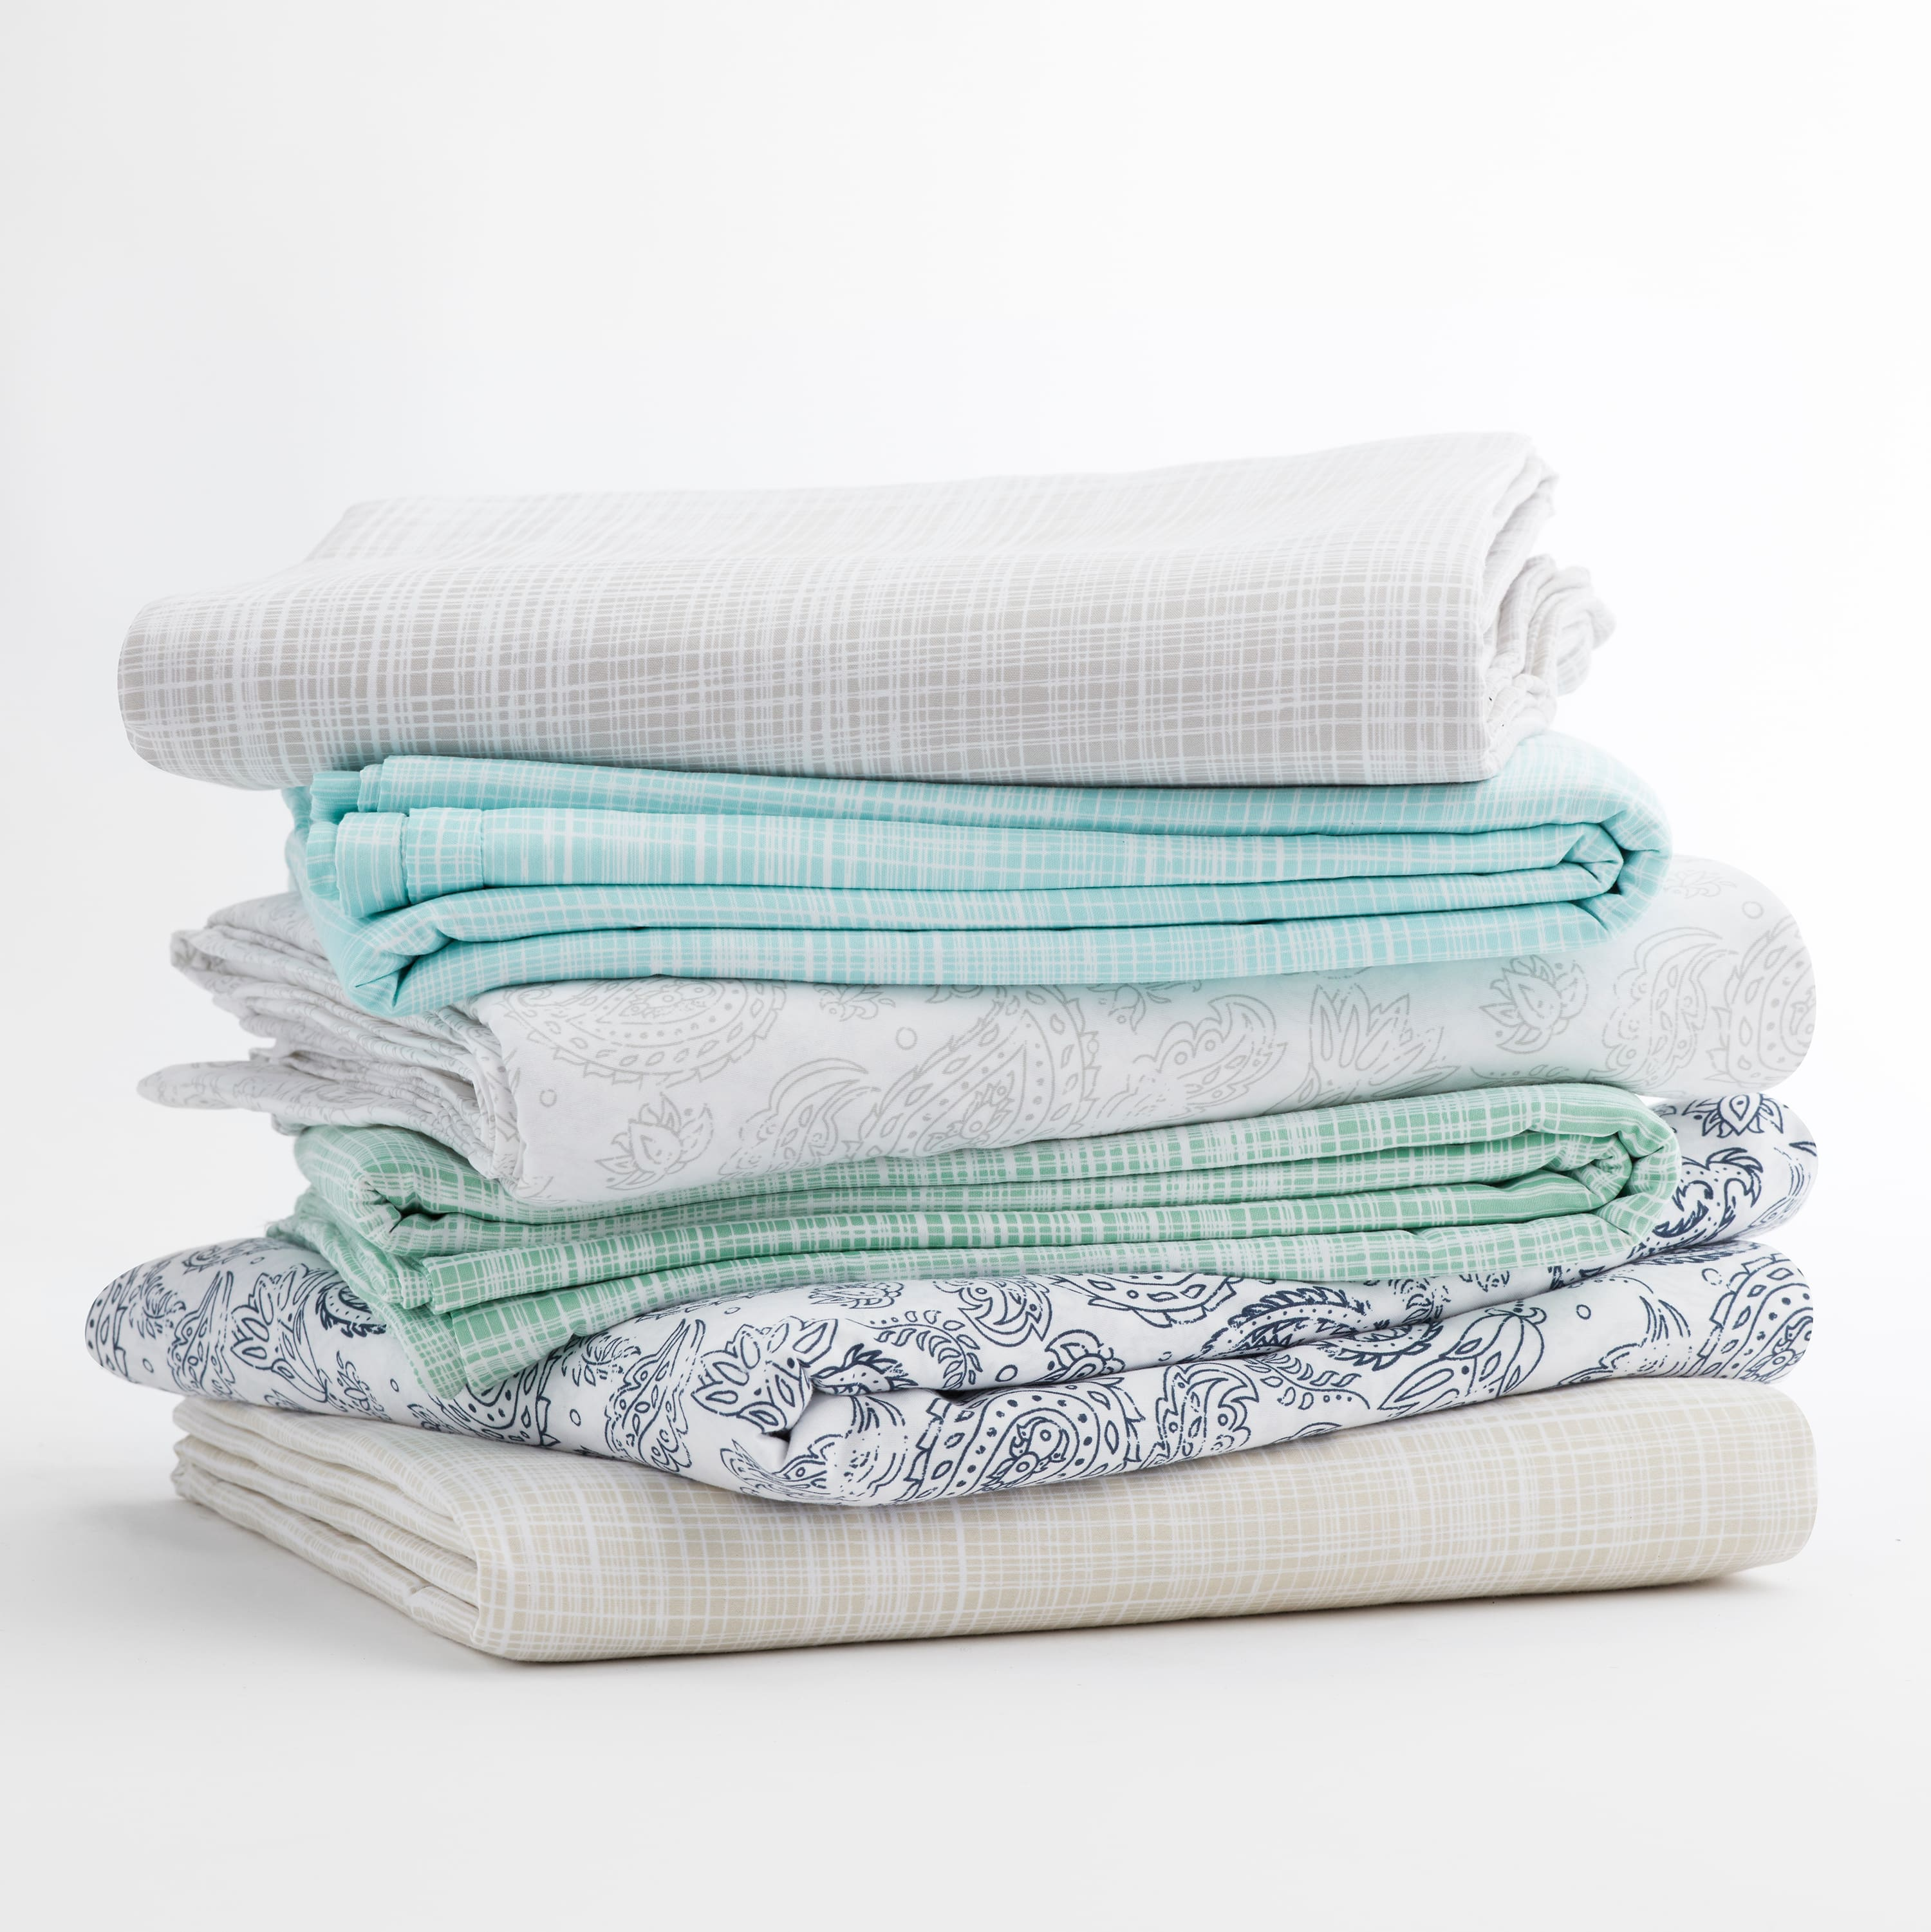 Linen's & Hutch Patterned Sheet Sets- All Sizes & Patterns $23 Shipped